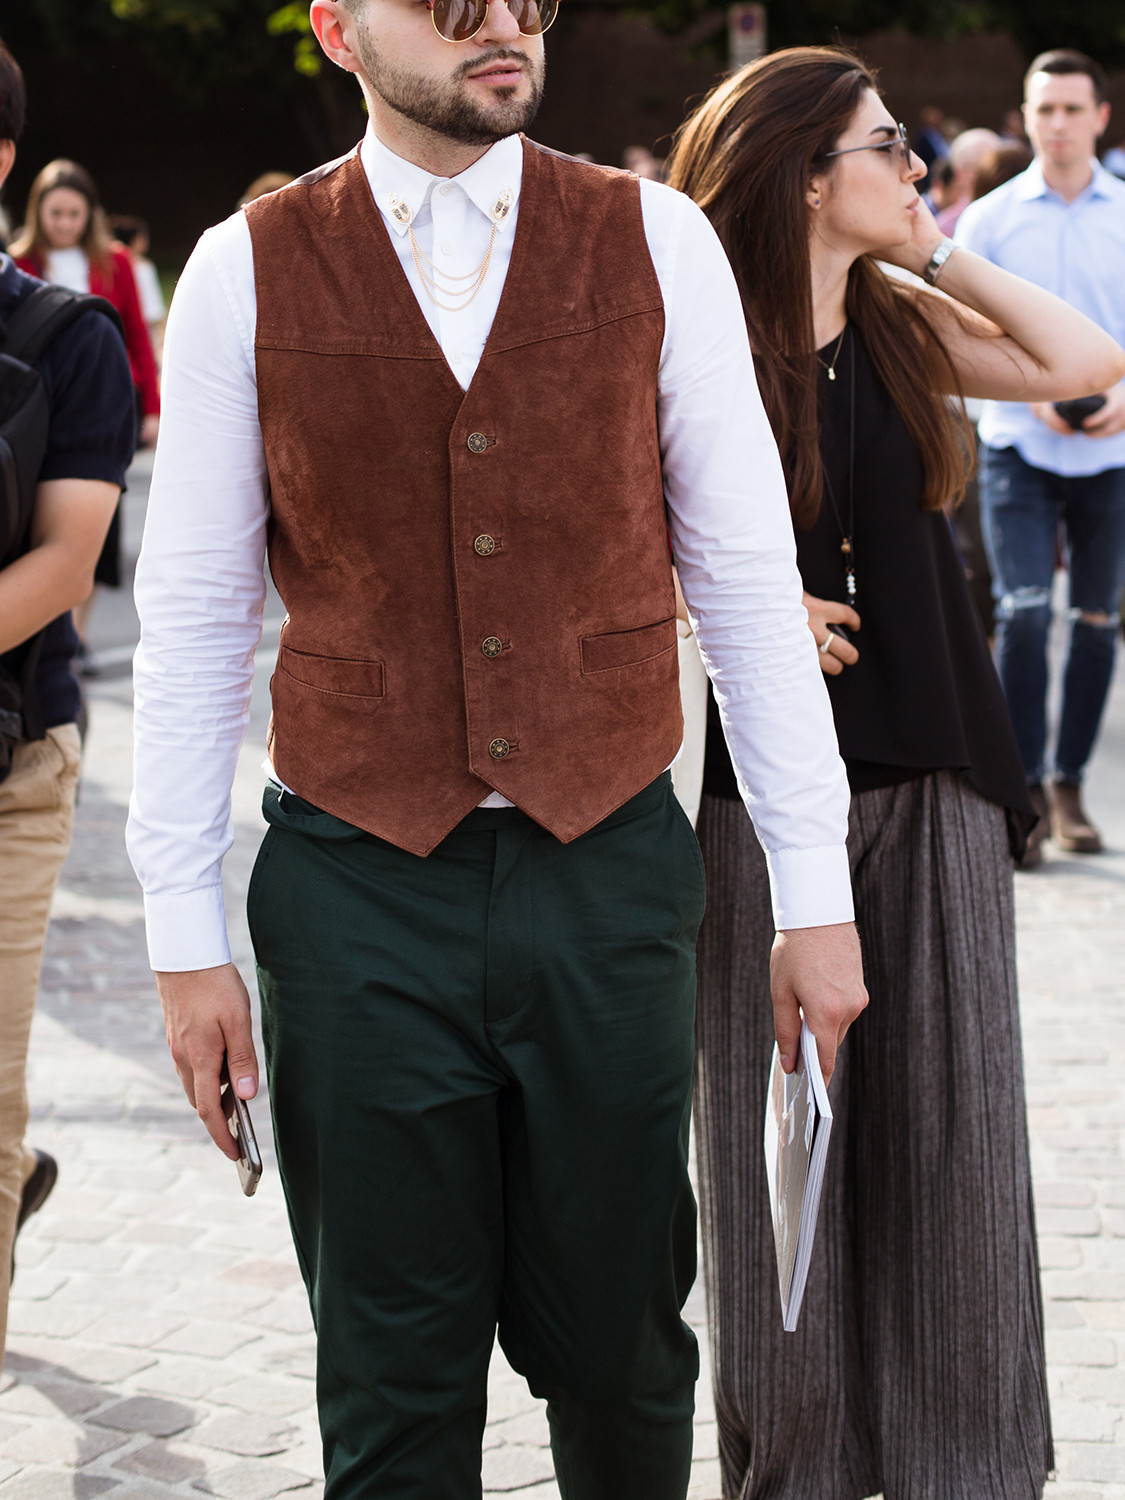 Men's outfit idea for 2021 with brown waistcoat, white casual shirt, black plain formal trousers, brown oxford / derby shoes. Suitable for spring, summer and autumn.